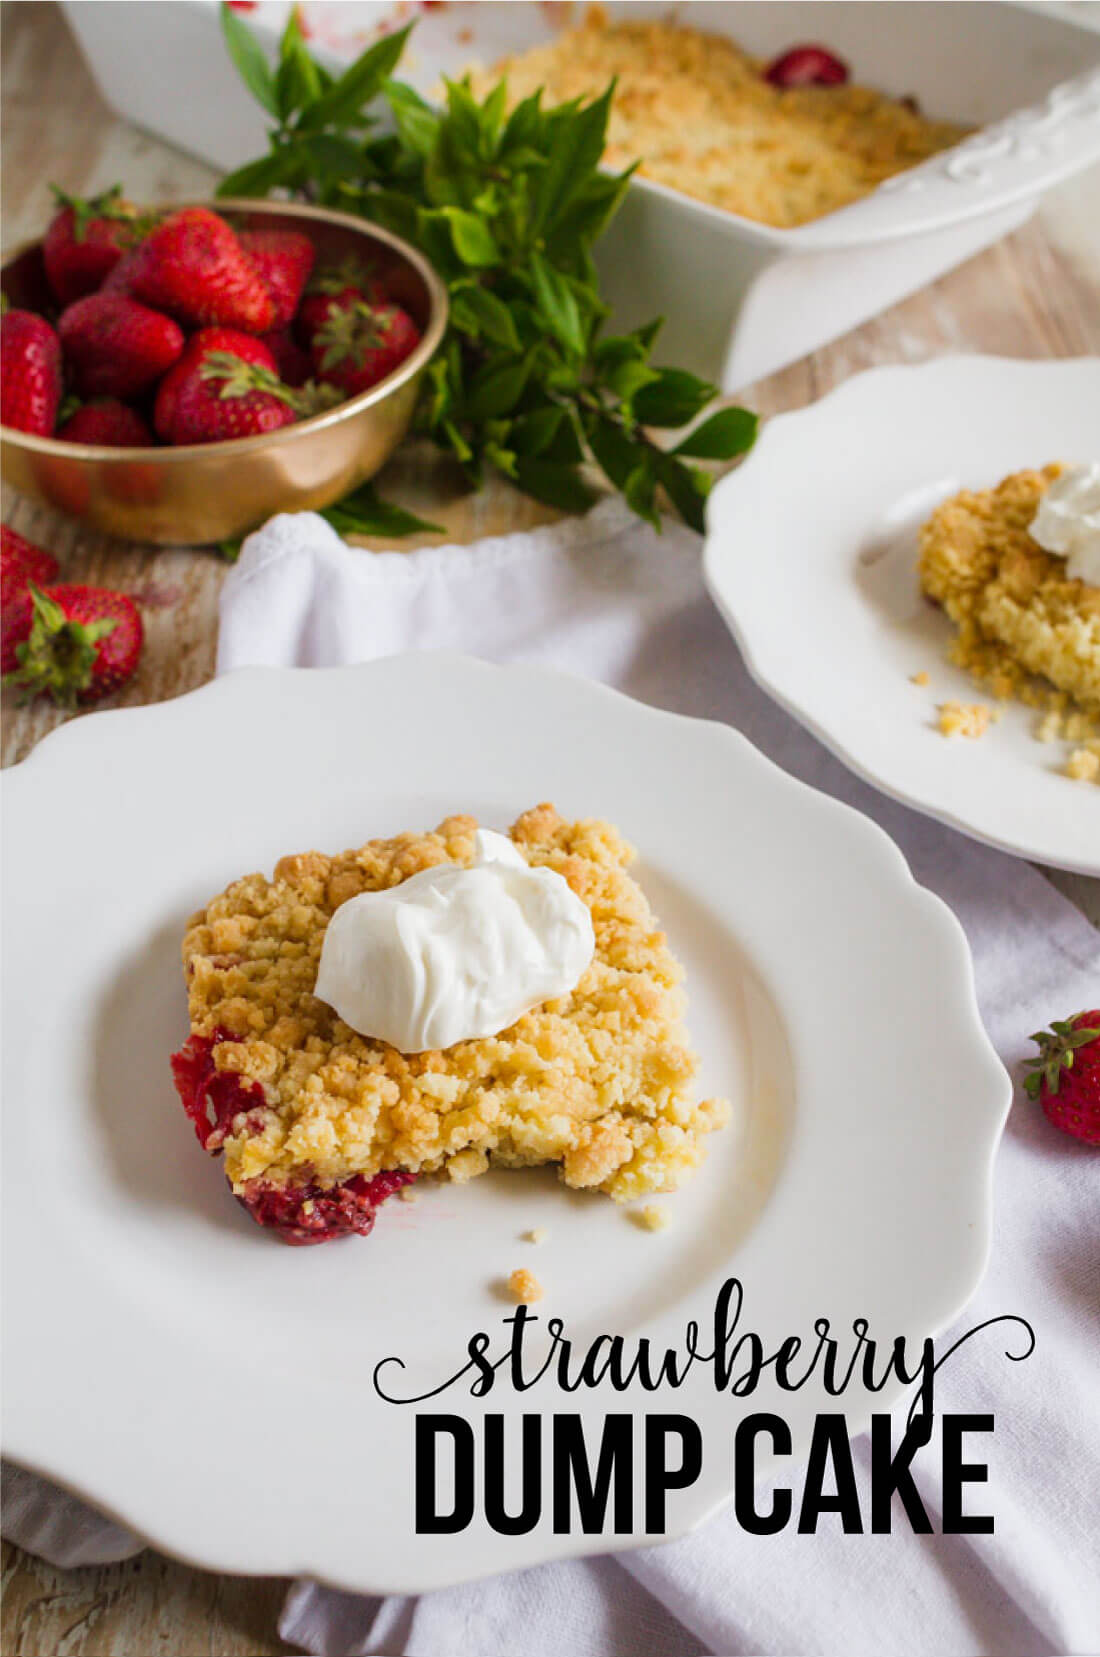 Strawberry Dump Cake - the easiest dessert recipe you'll ever make! www.thirtyhandmadedays.com